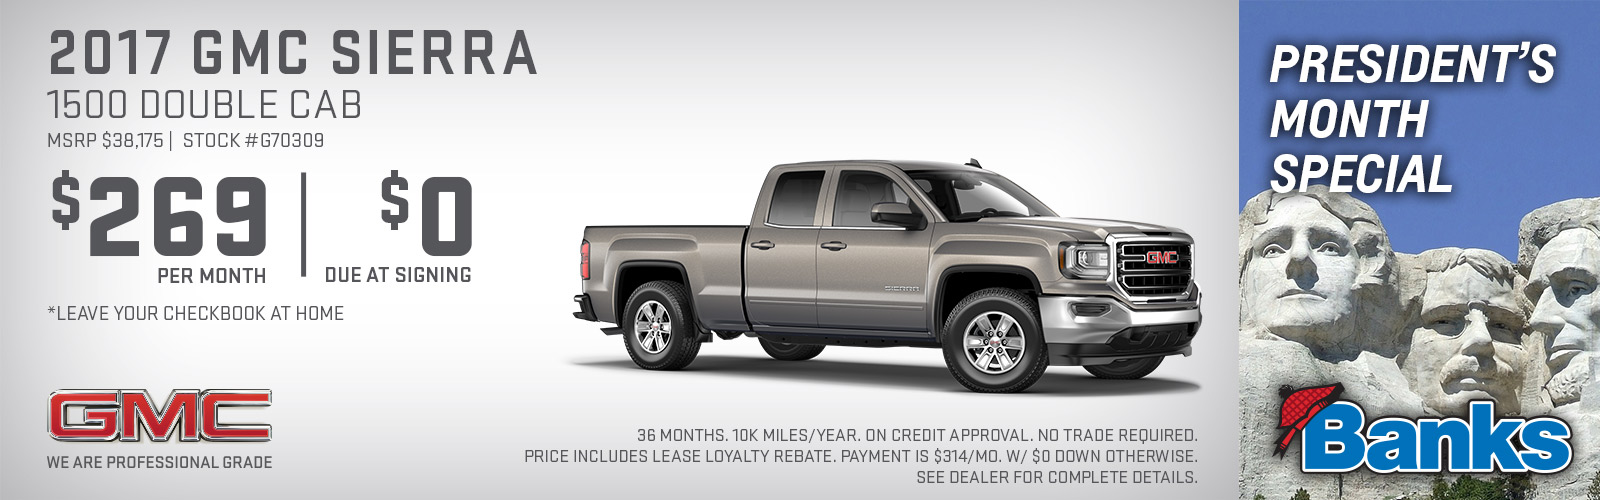 2017 GMC Sierra 1500 Double Cab President's Day Special